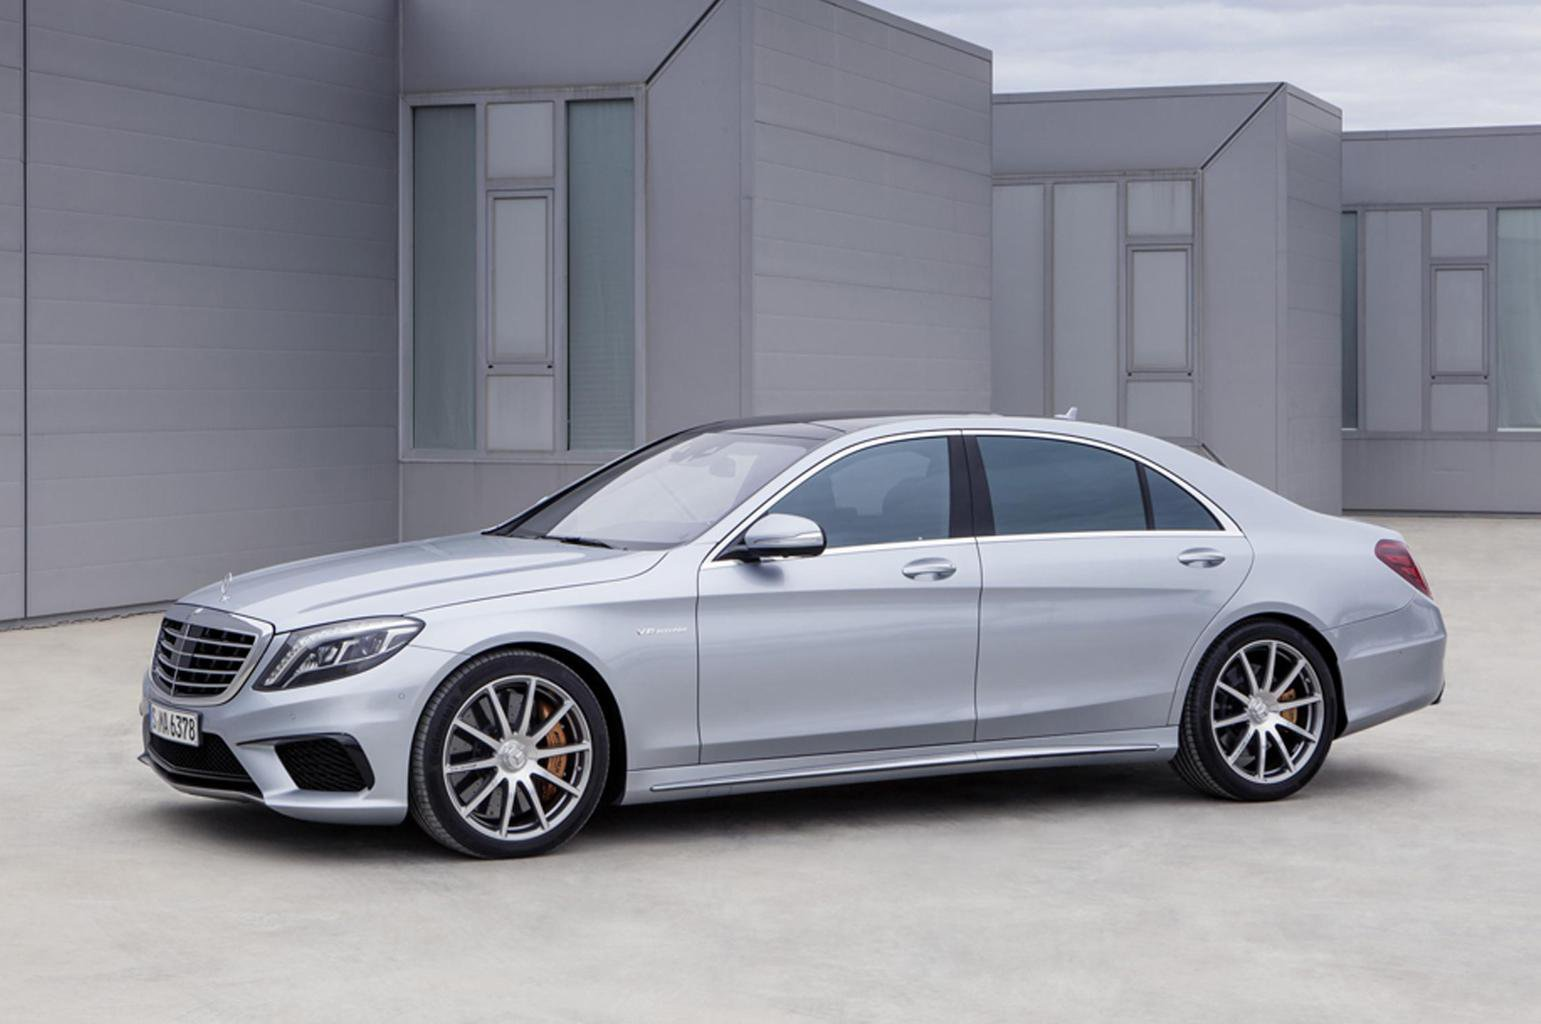 Mercedes S63 AMG pricing announced